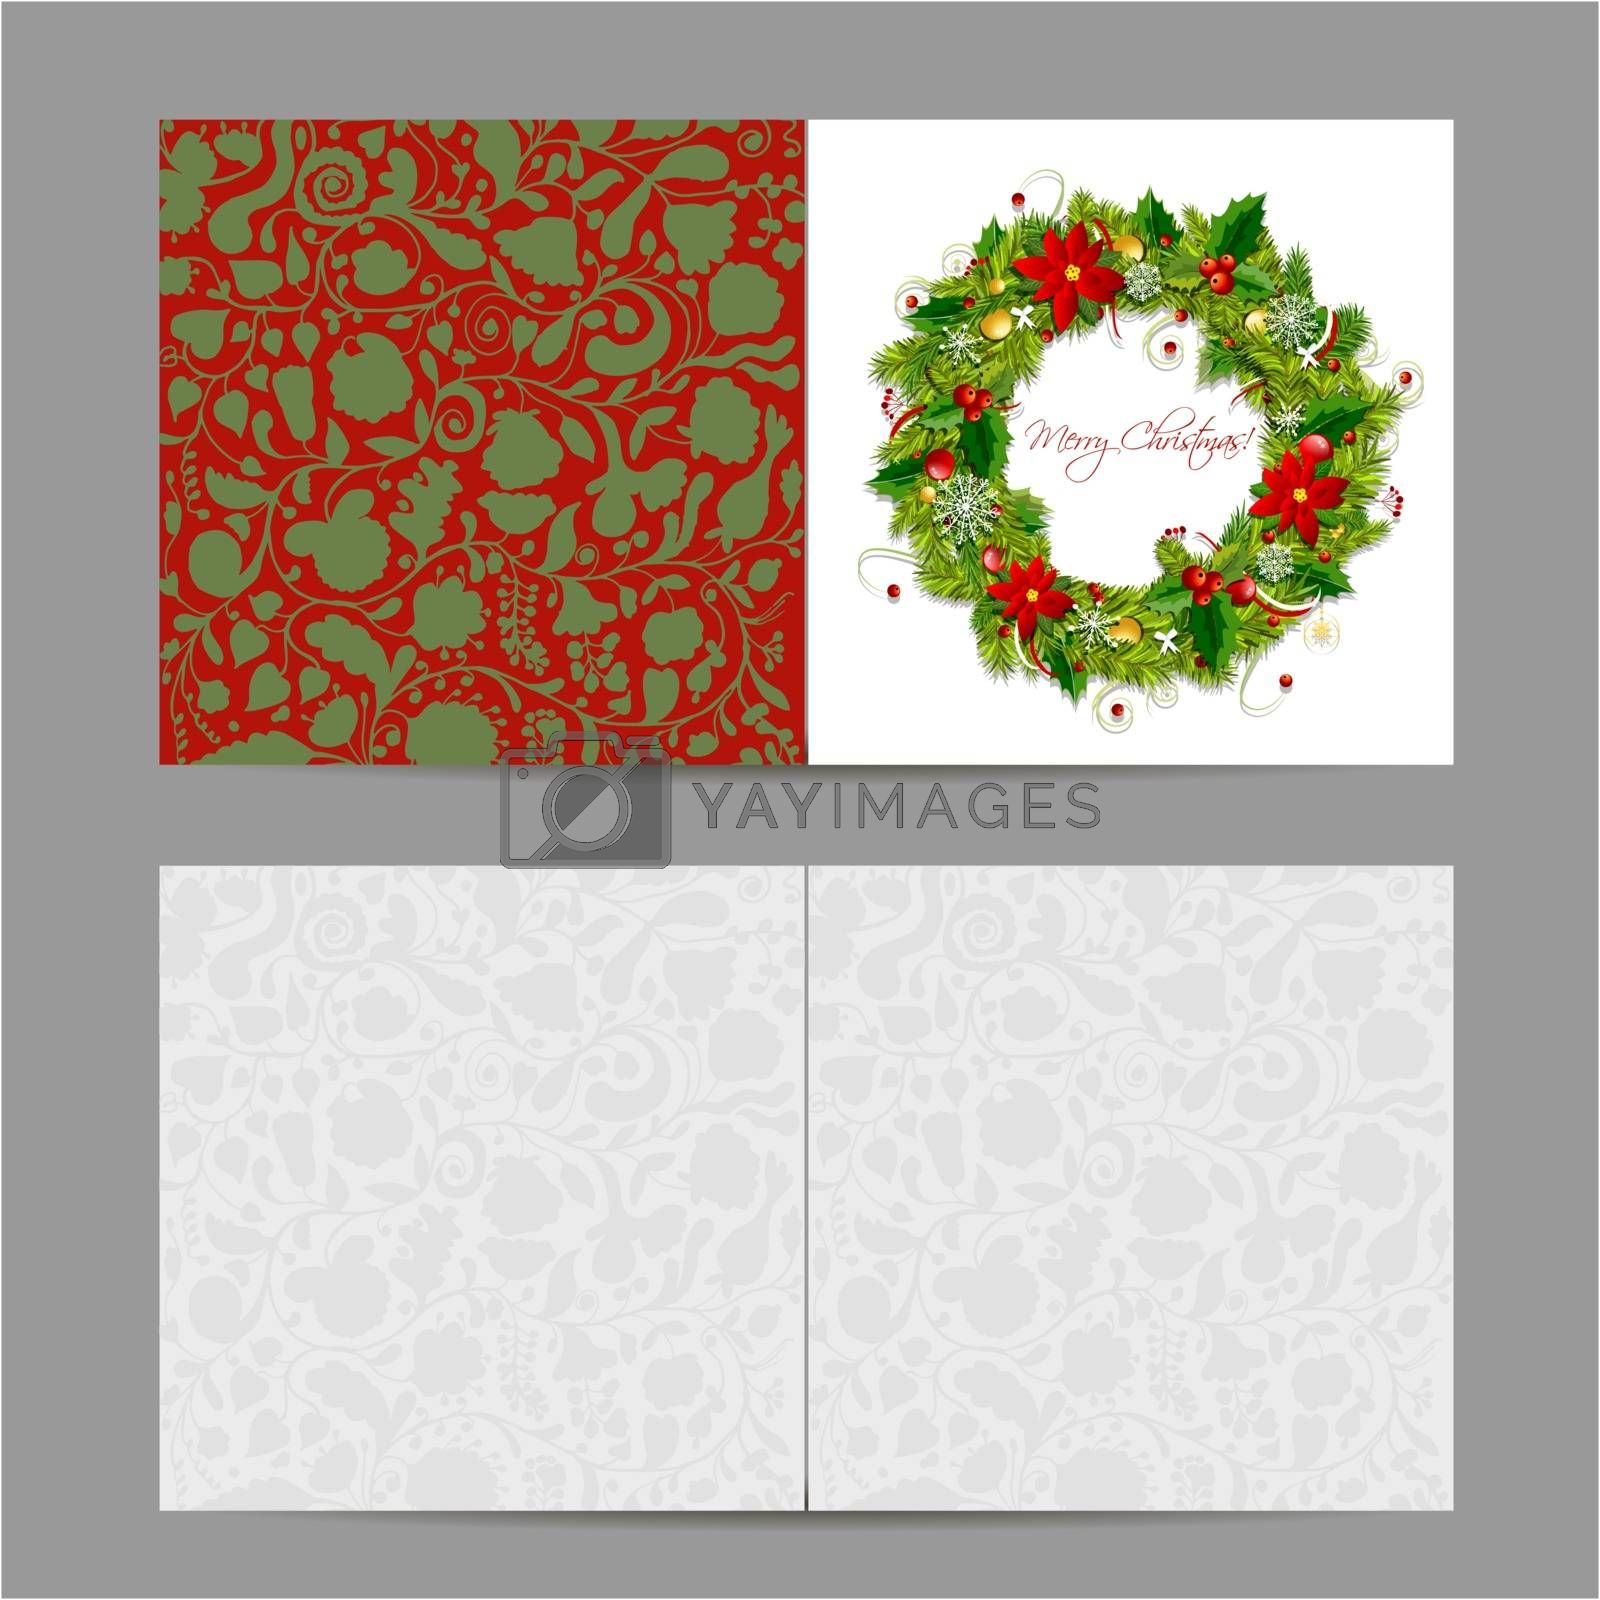 Christmas card, wreath for your design. Vector illustration